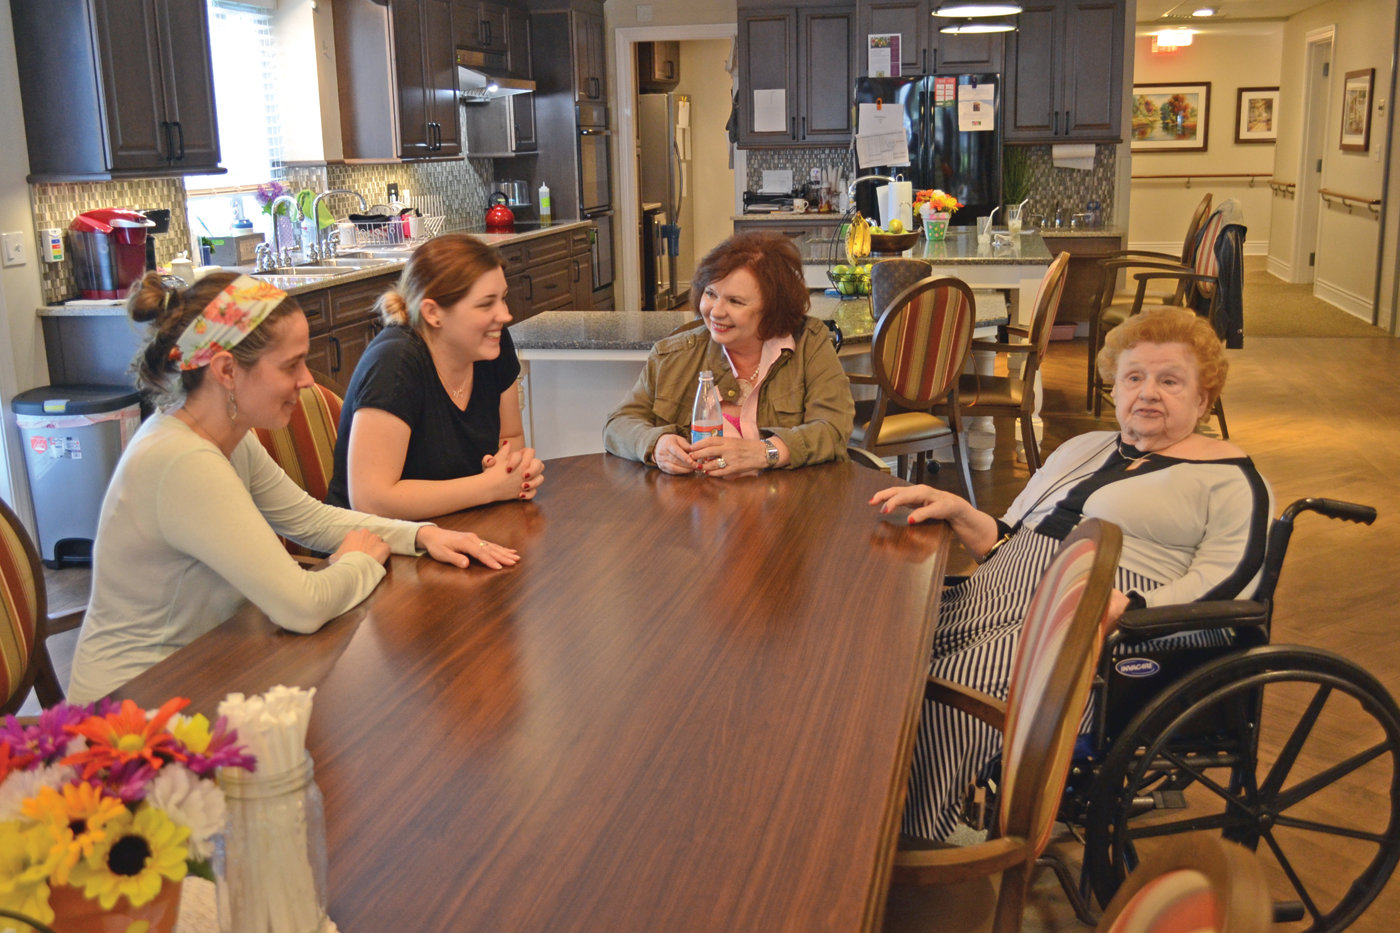 FAMILY ENVIRONMENT: Saint Elizabeth Green House home guide Sarah Bowater (left), Chrissy Yuras, Cheryl Prior and Green House home resident Claire Hill chat at the dinner table of one of Saint Elizabeth Community's Green House homes.